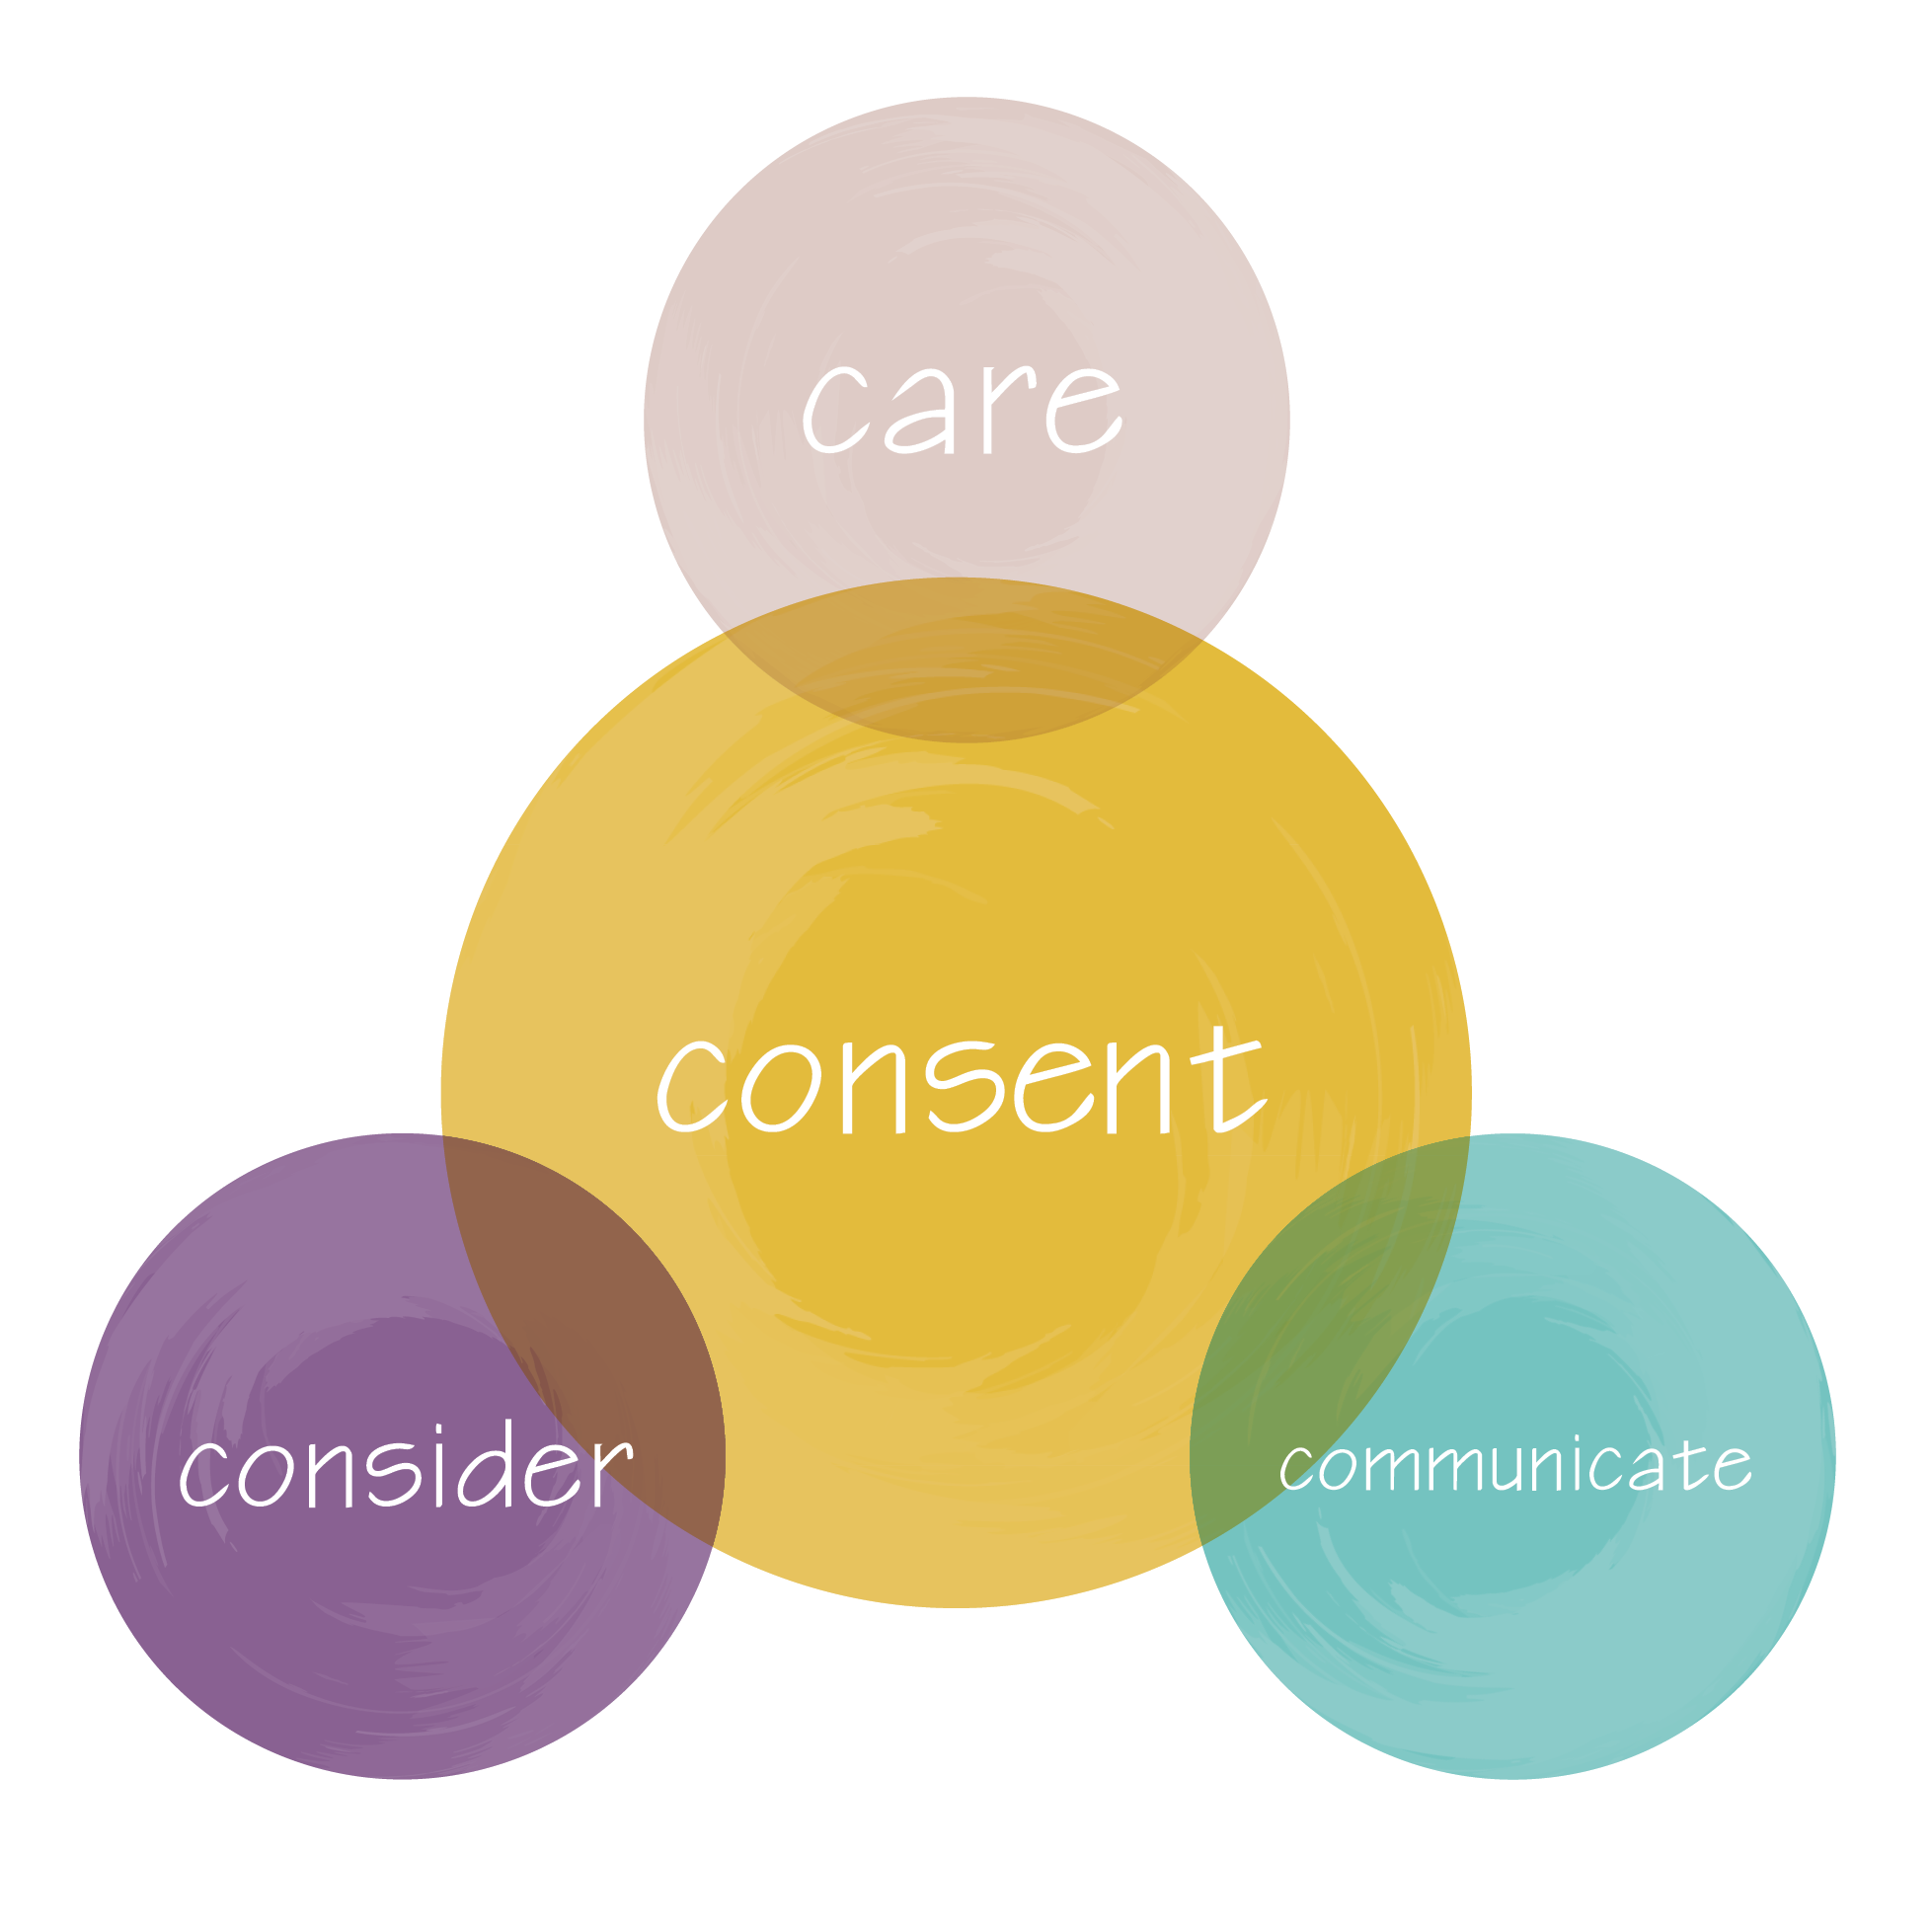 Ethical sexual decision making involves consent, care, communication and consideration